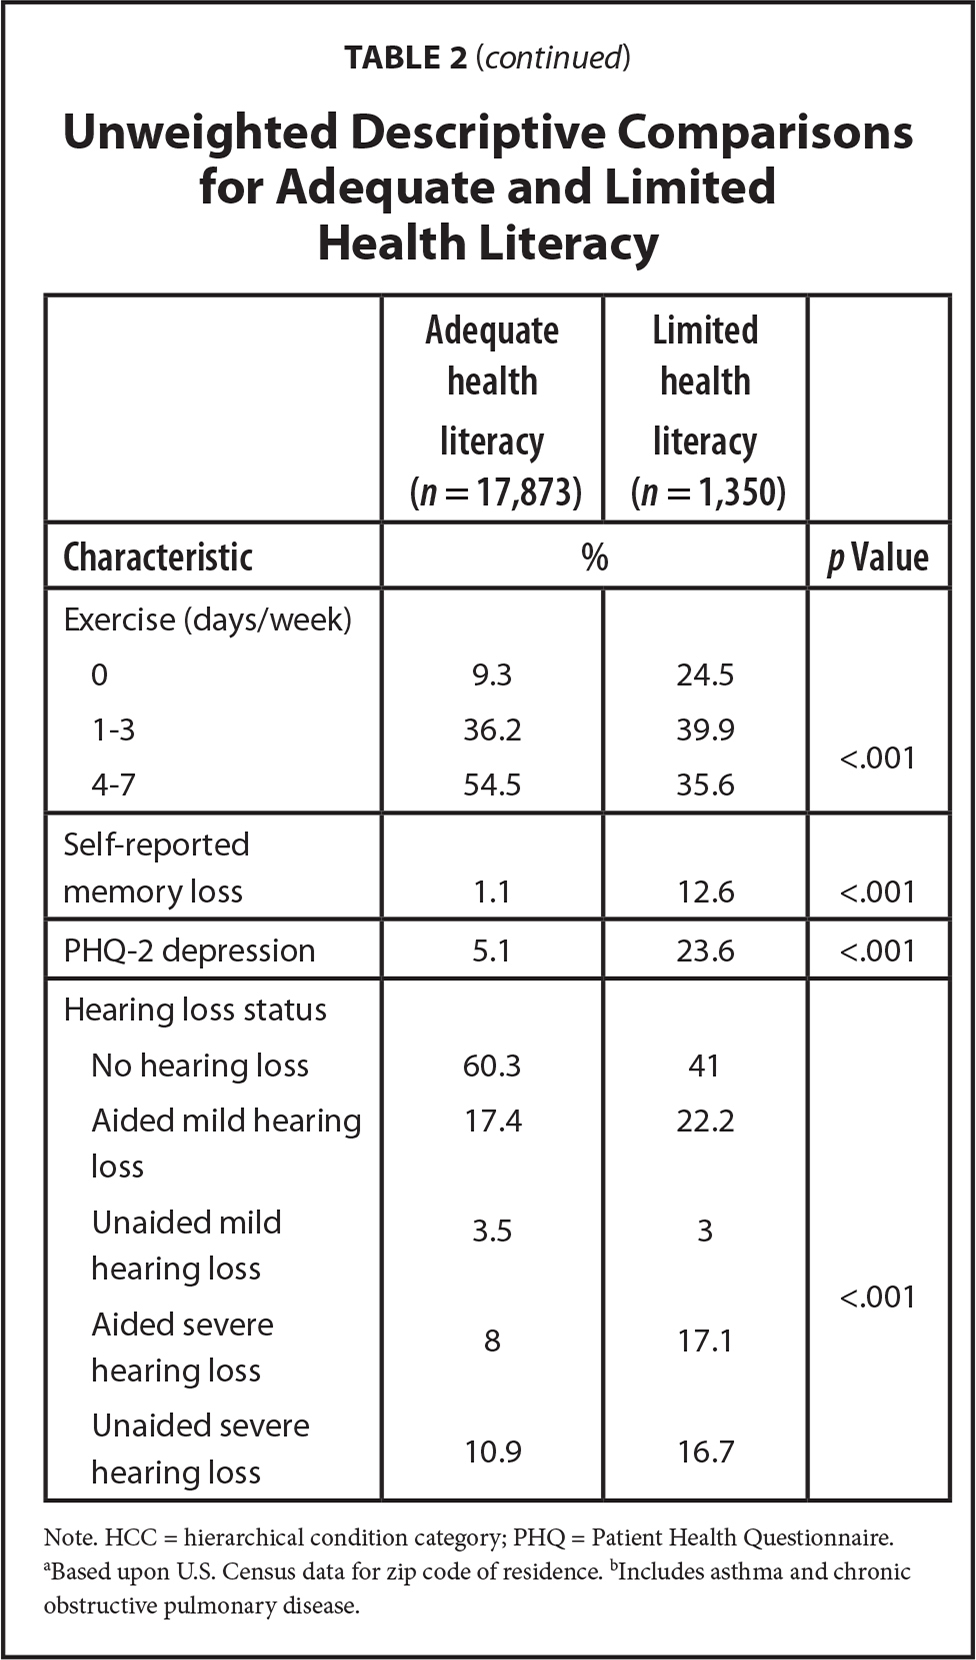 Unweighted Descriptive Comparisons for Adequate and Limited Health Literacy